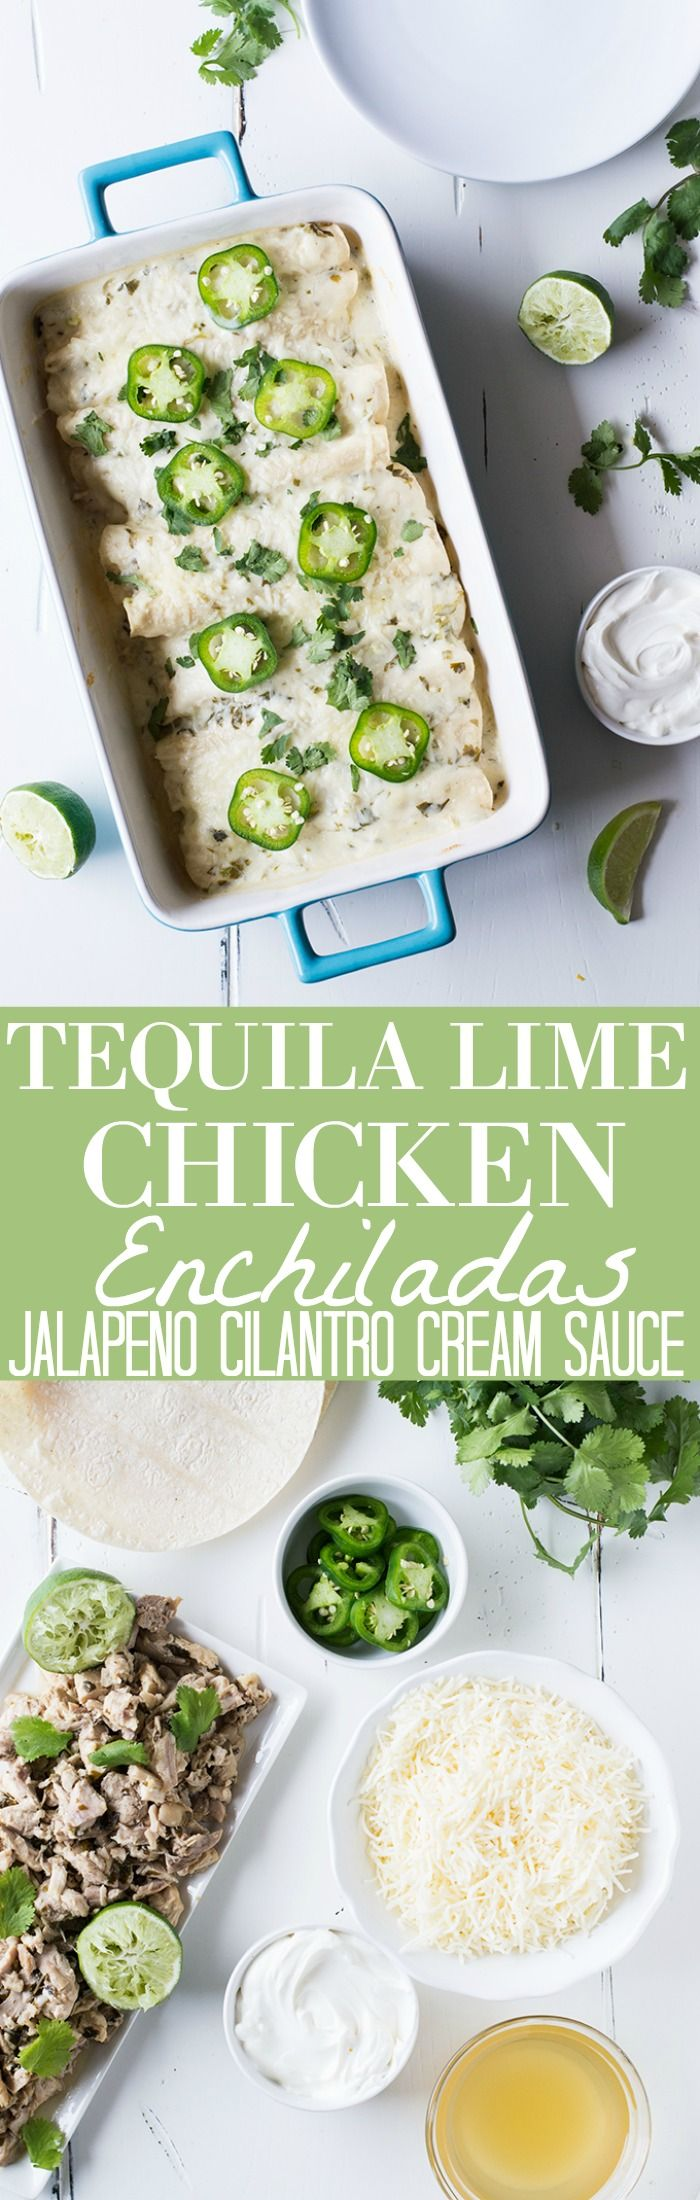 Tequila Lime Chicken Enchiladas with a Creamy Jalapeño Cilantro Sauce.  These enchiladas are SO flavorful!  Full of tender tequila lime chicken, cheese, and topped with a cheesy, creamy jalapeño cilantro sauce.